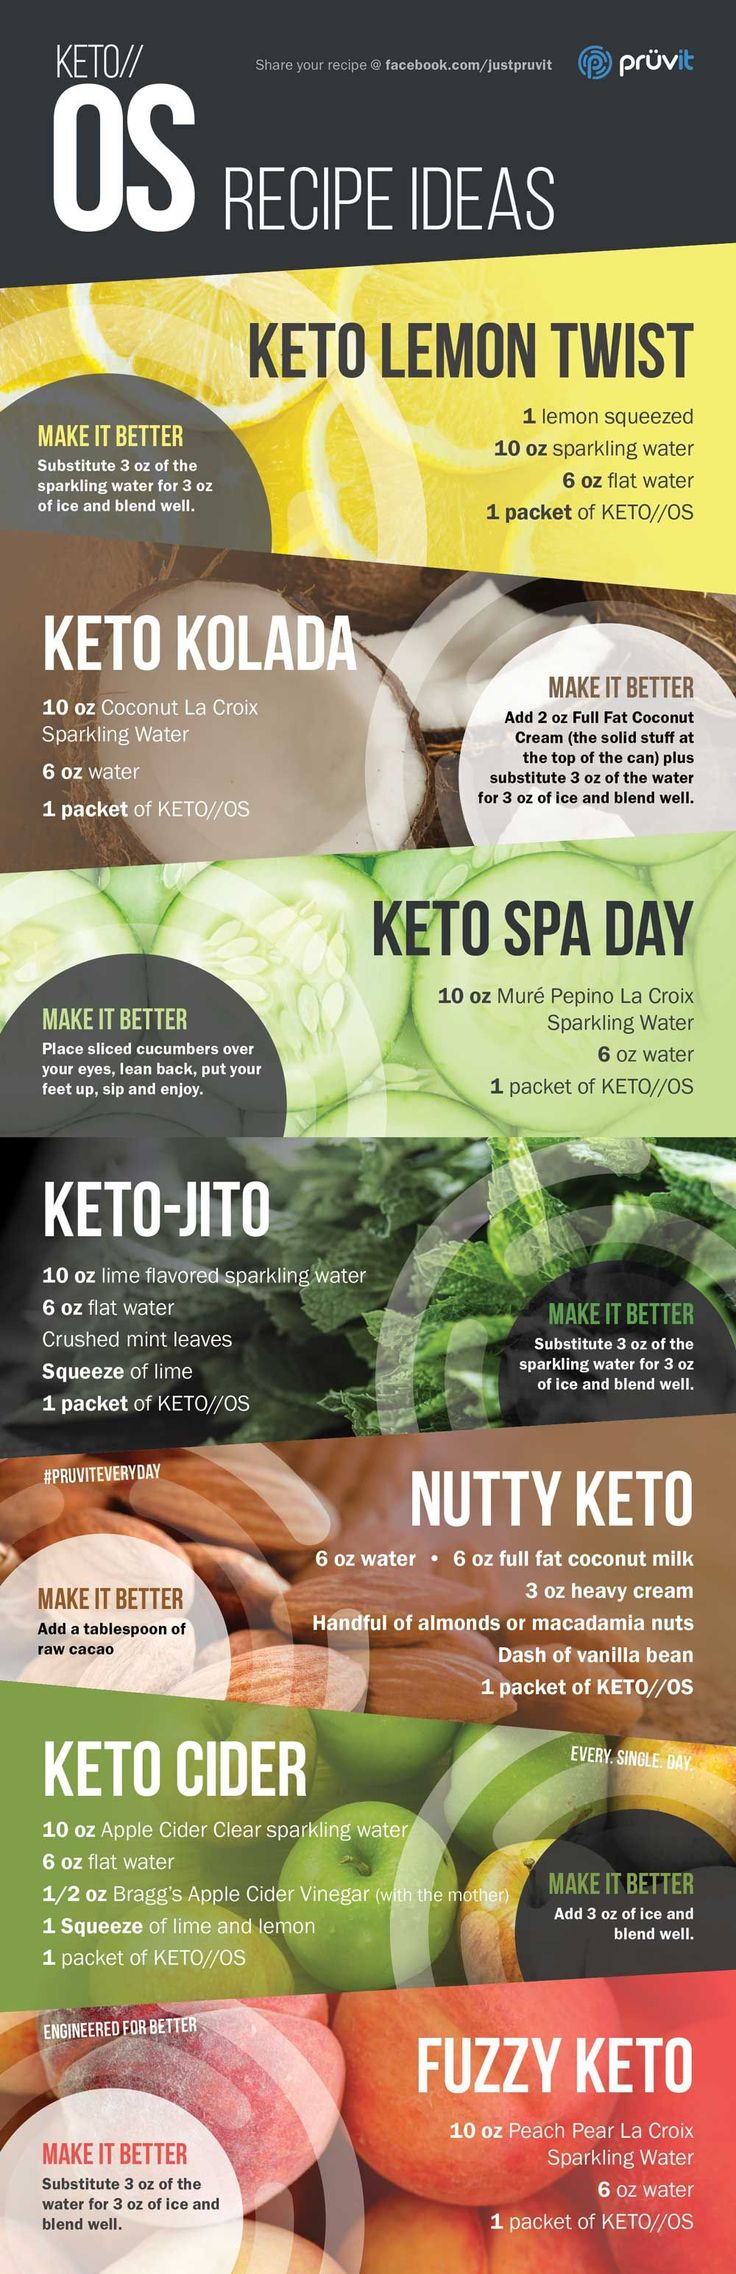 Have some fun with these tasty and colorful Keto recipes!